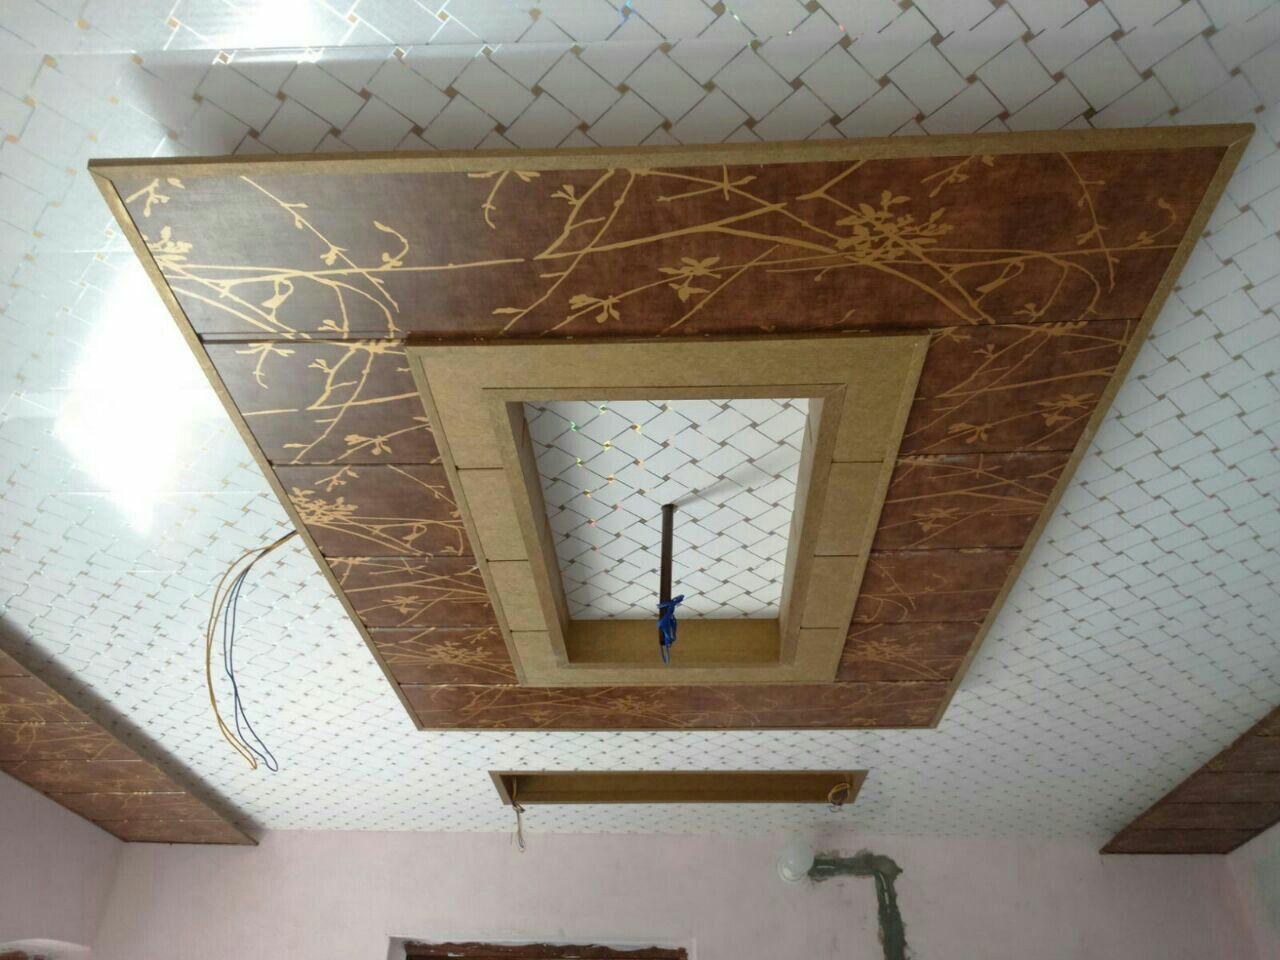 Pin By Mahinder On Mahinder 1112 Pvc Ceiling Design Pvc Wall Panels Designs Pvc Wall Panels